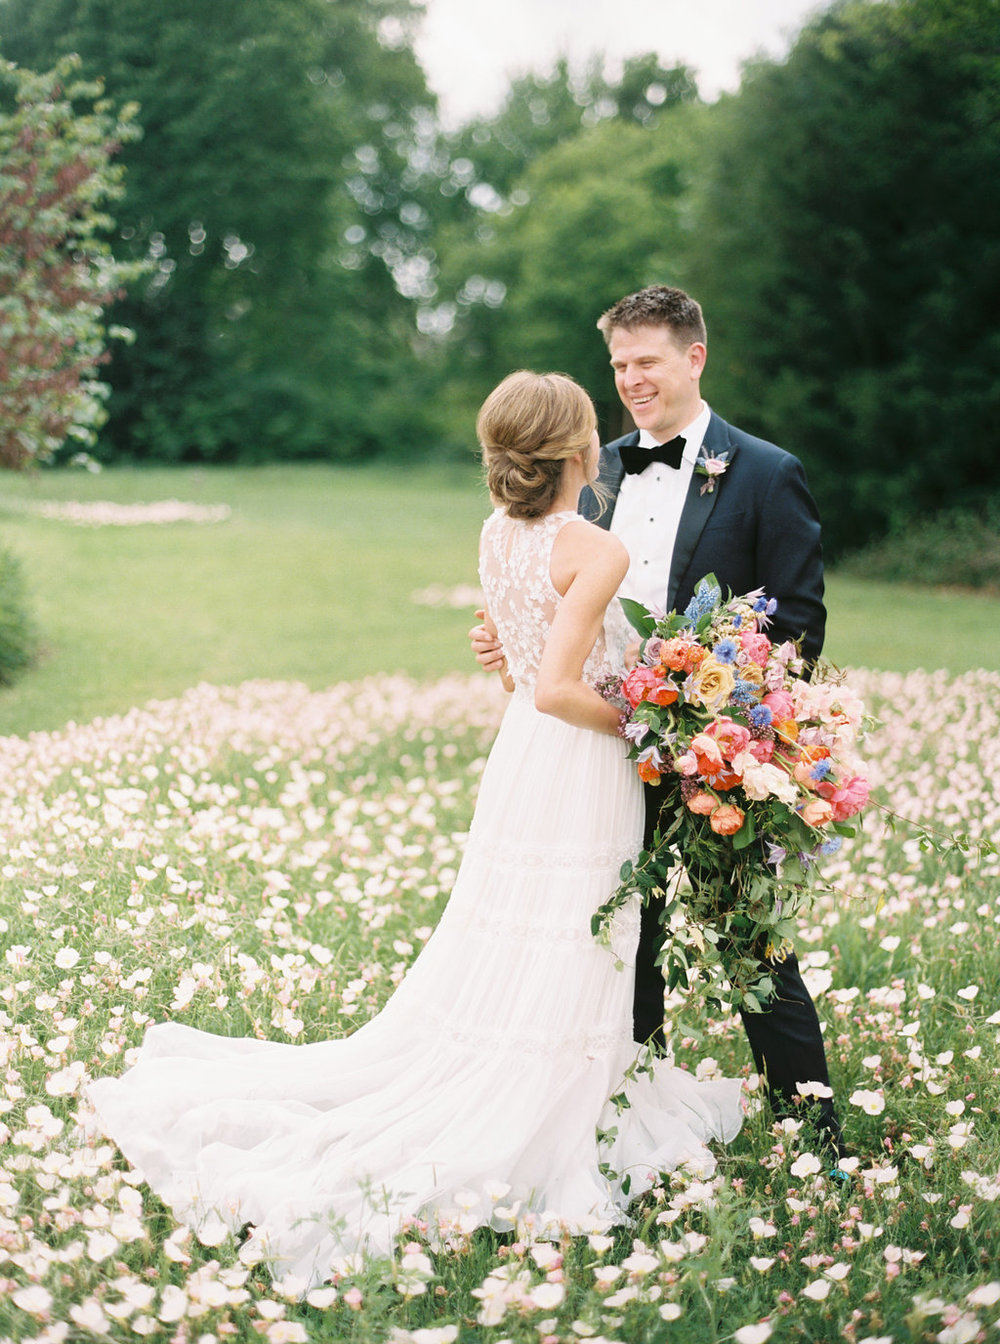 Colorful Farm-to-Table wedding featured in   Martha Stewart Weddings